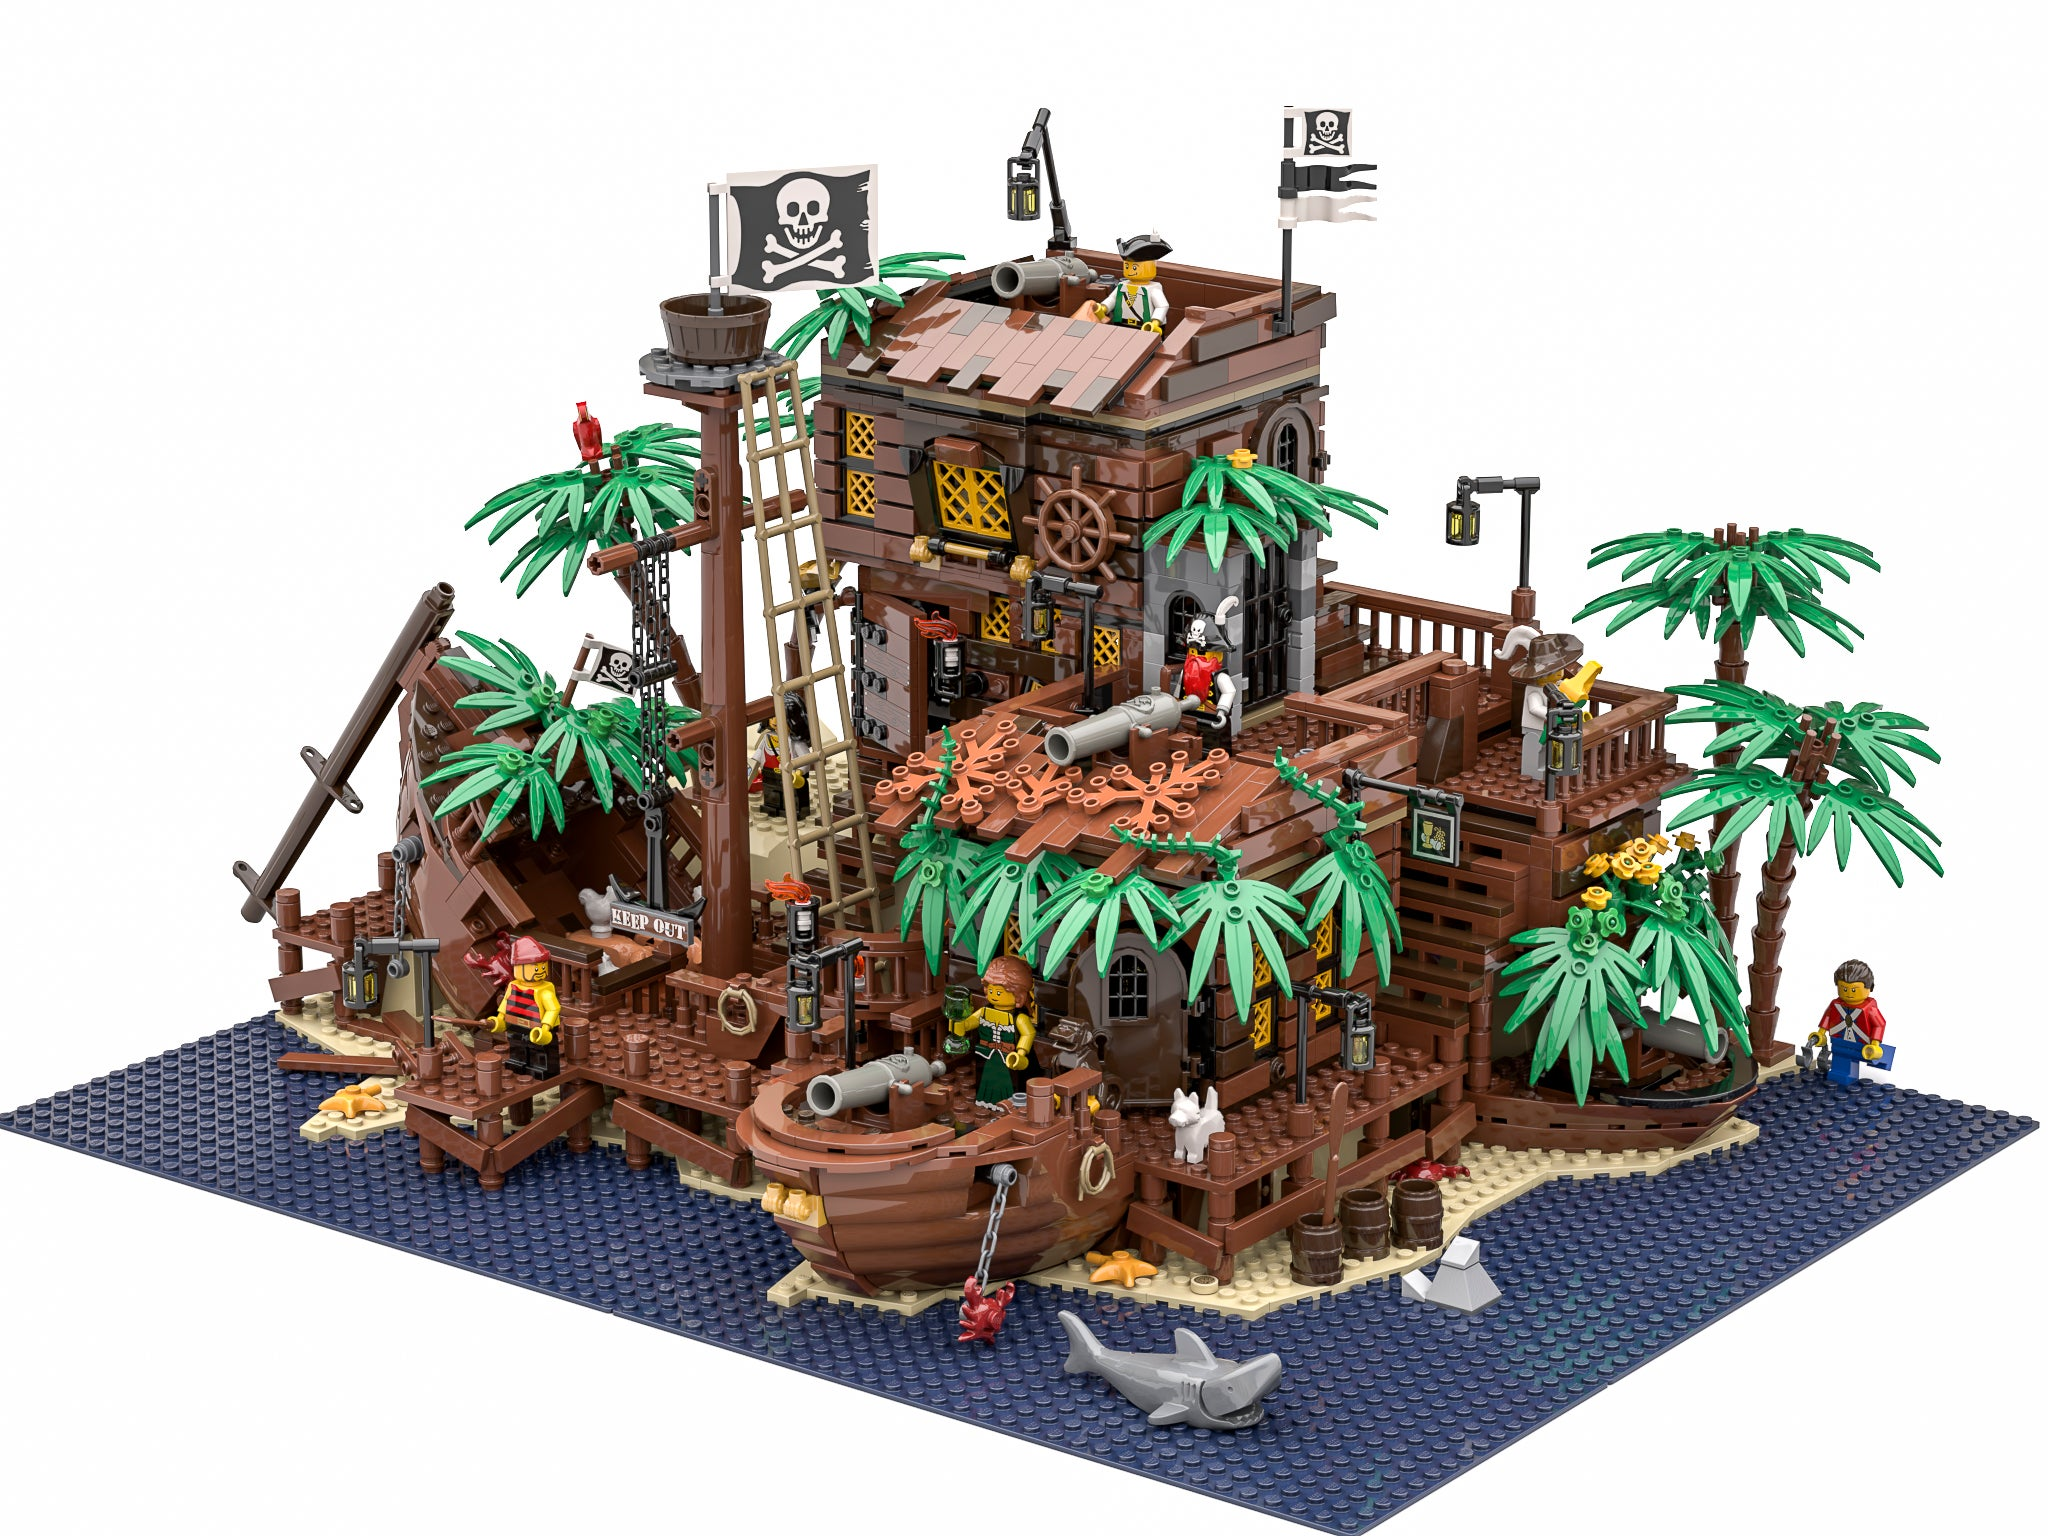 Please, LEGO, Make This Pirate Island